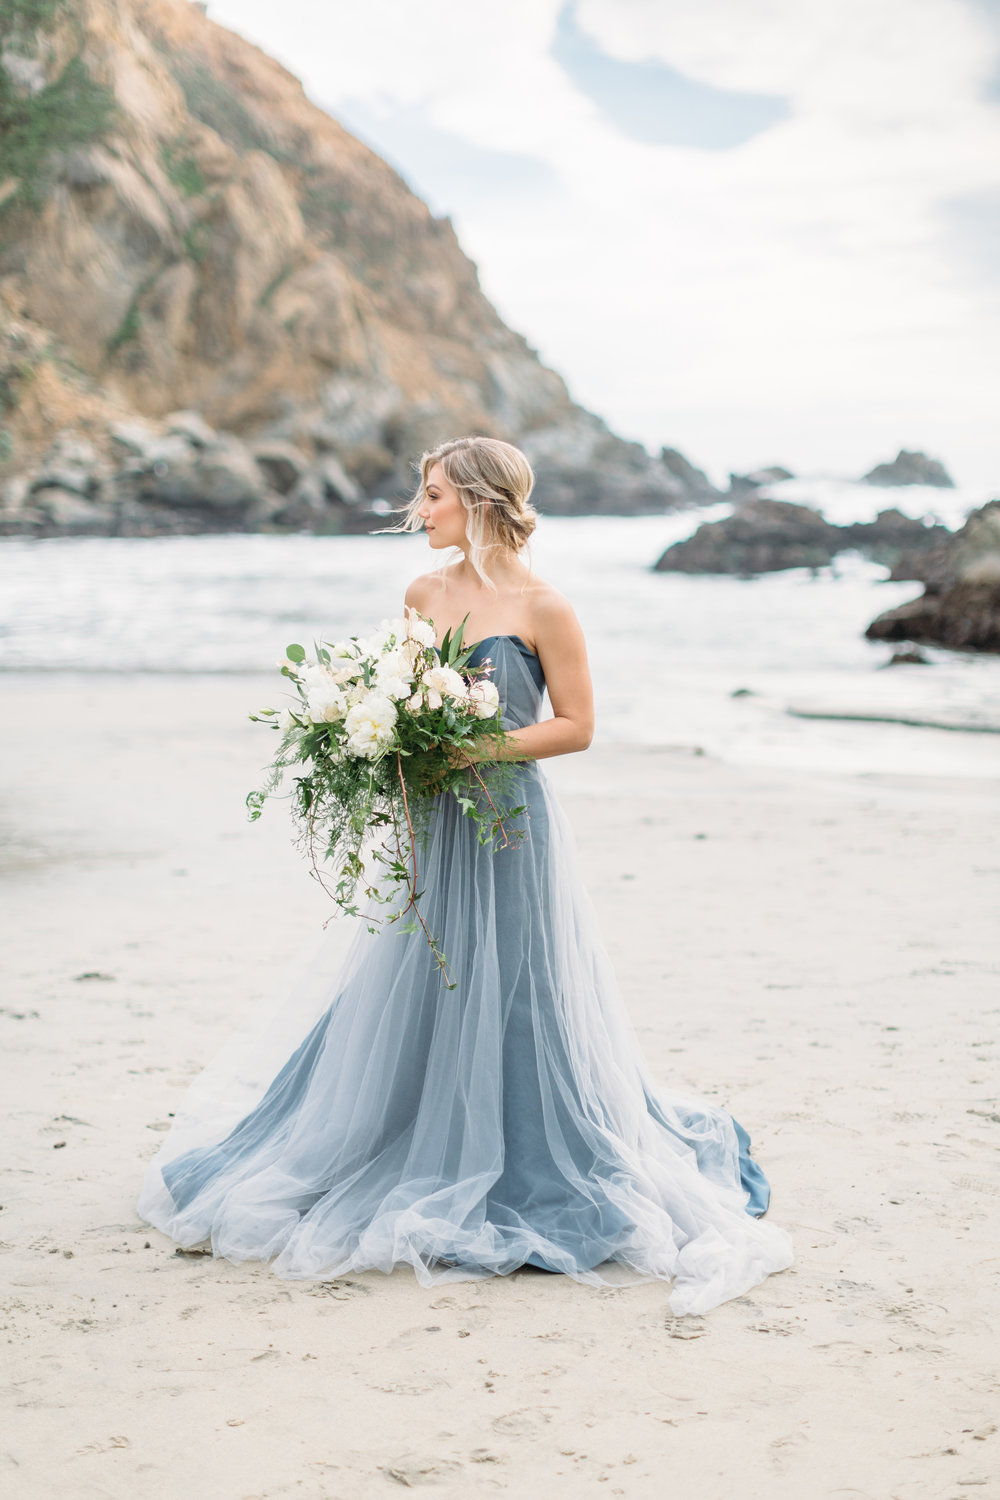 big-sur-wedding-tara-latour-17.jpg